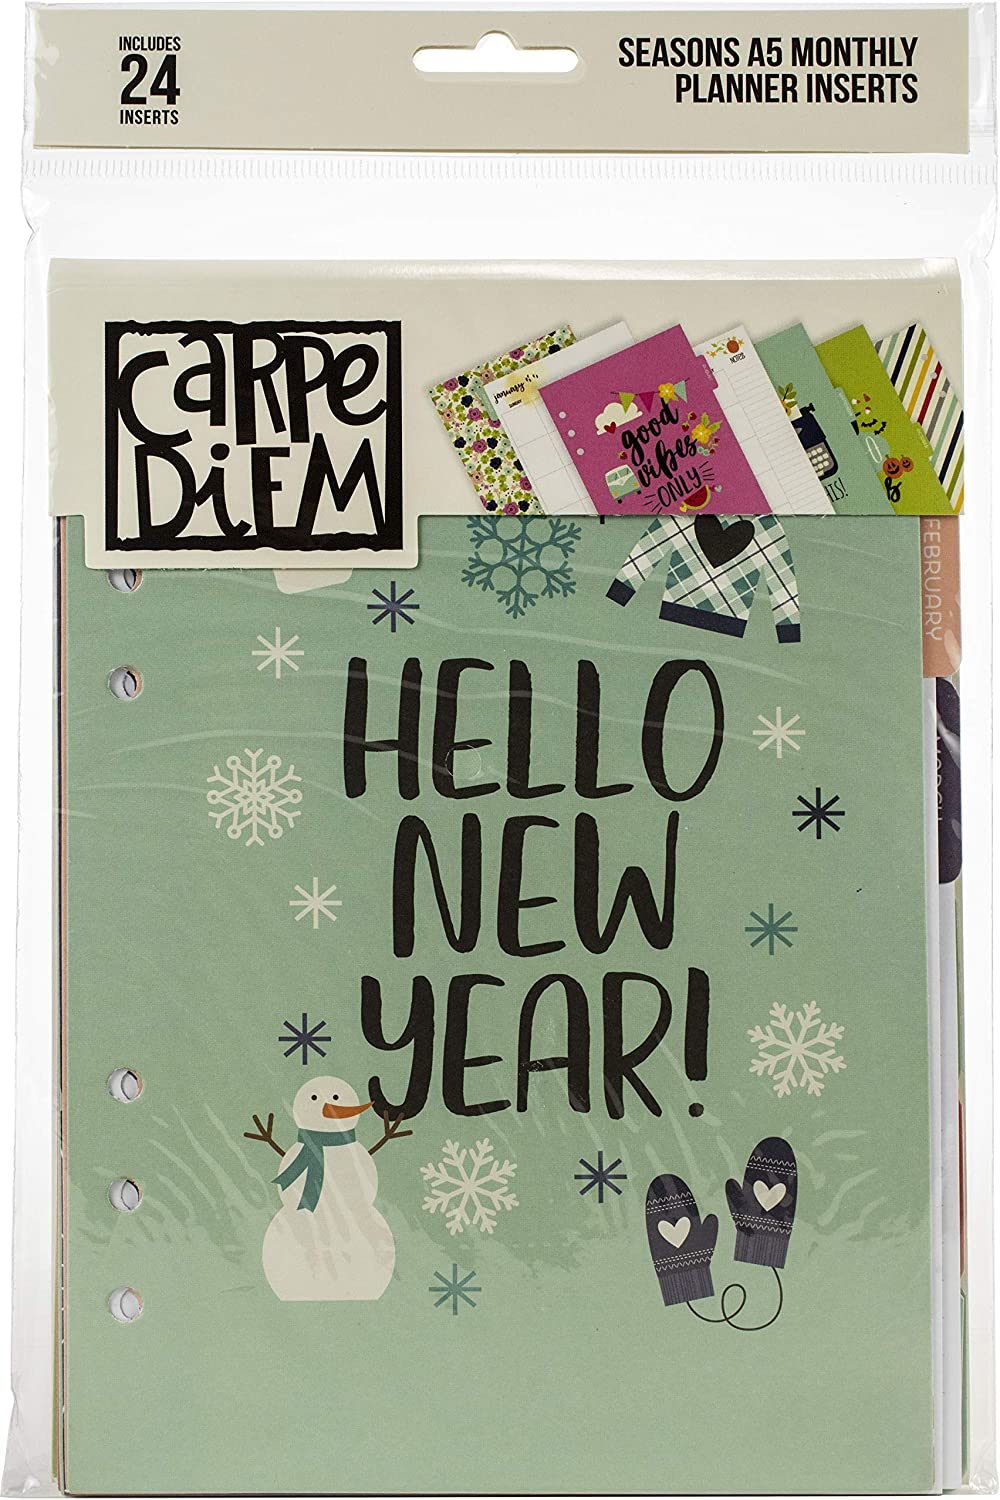 Simple Stories Carpe Diem Seasons Double-Sided Insert Cash special price Planner Many popular brands A5